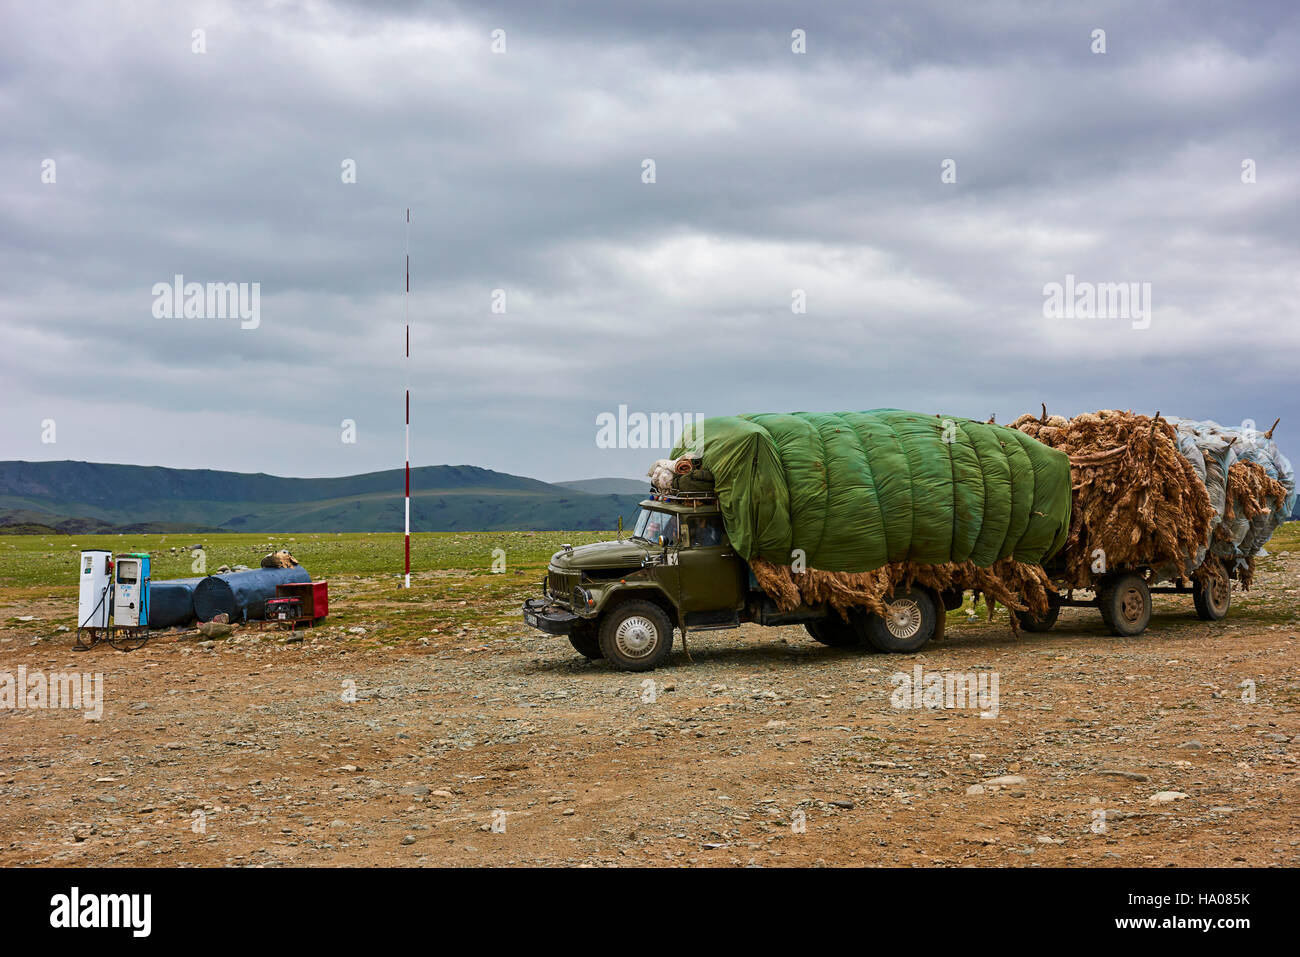 Mongolia, Bayan-Ulgii province, western Mongolia, a truck weighed down with the wool at petrol pompe - Stock Image